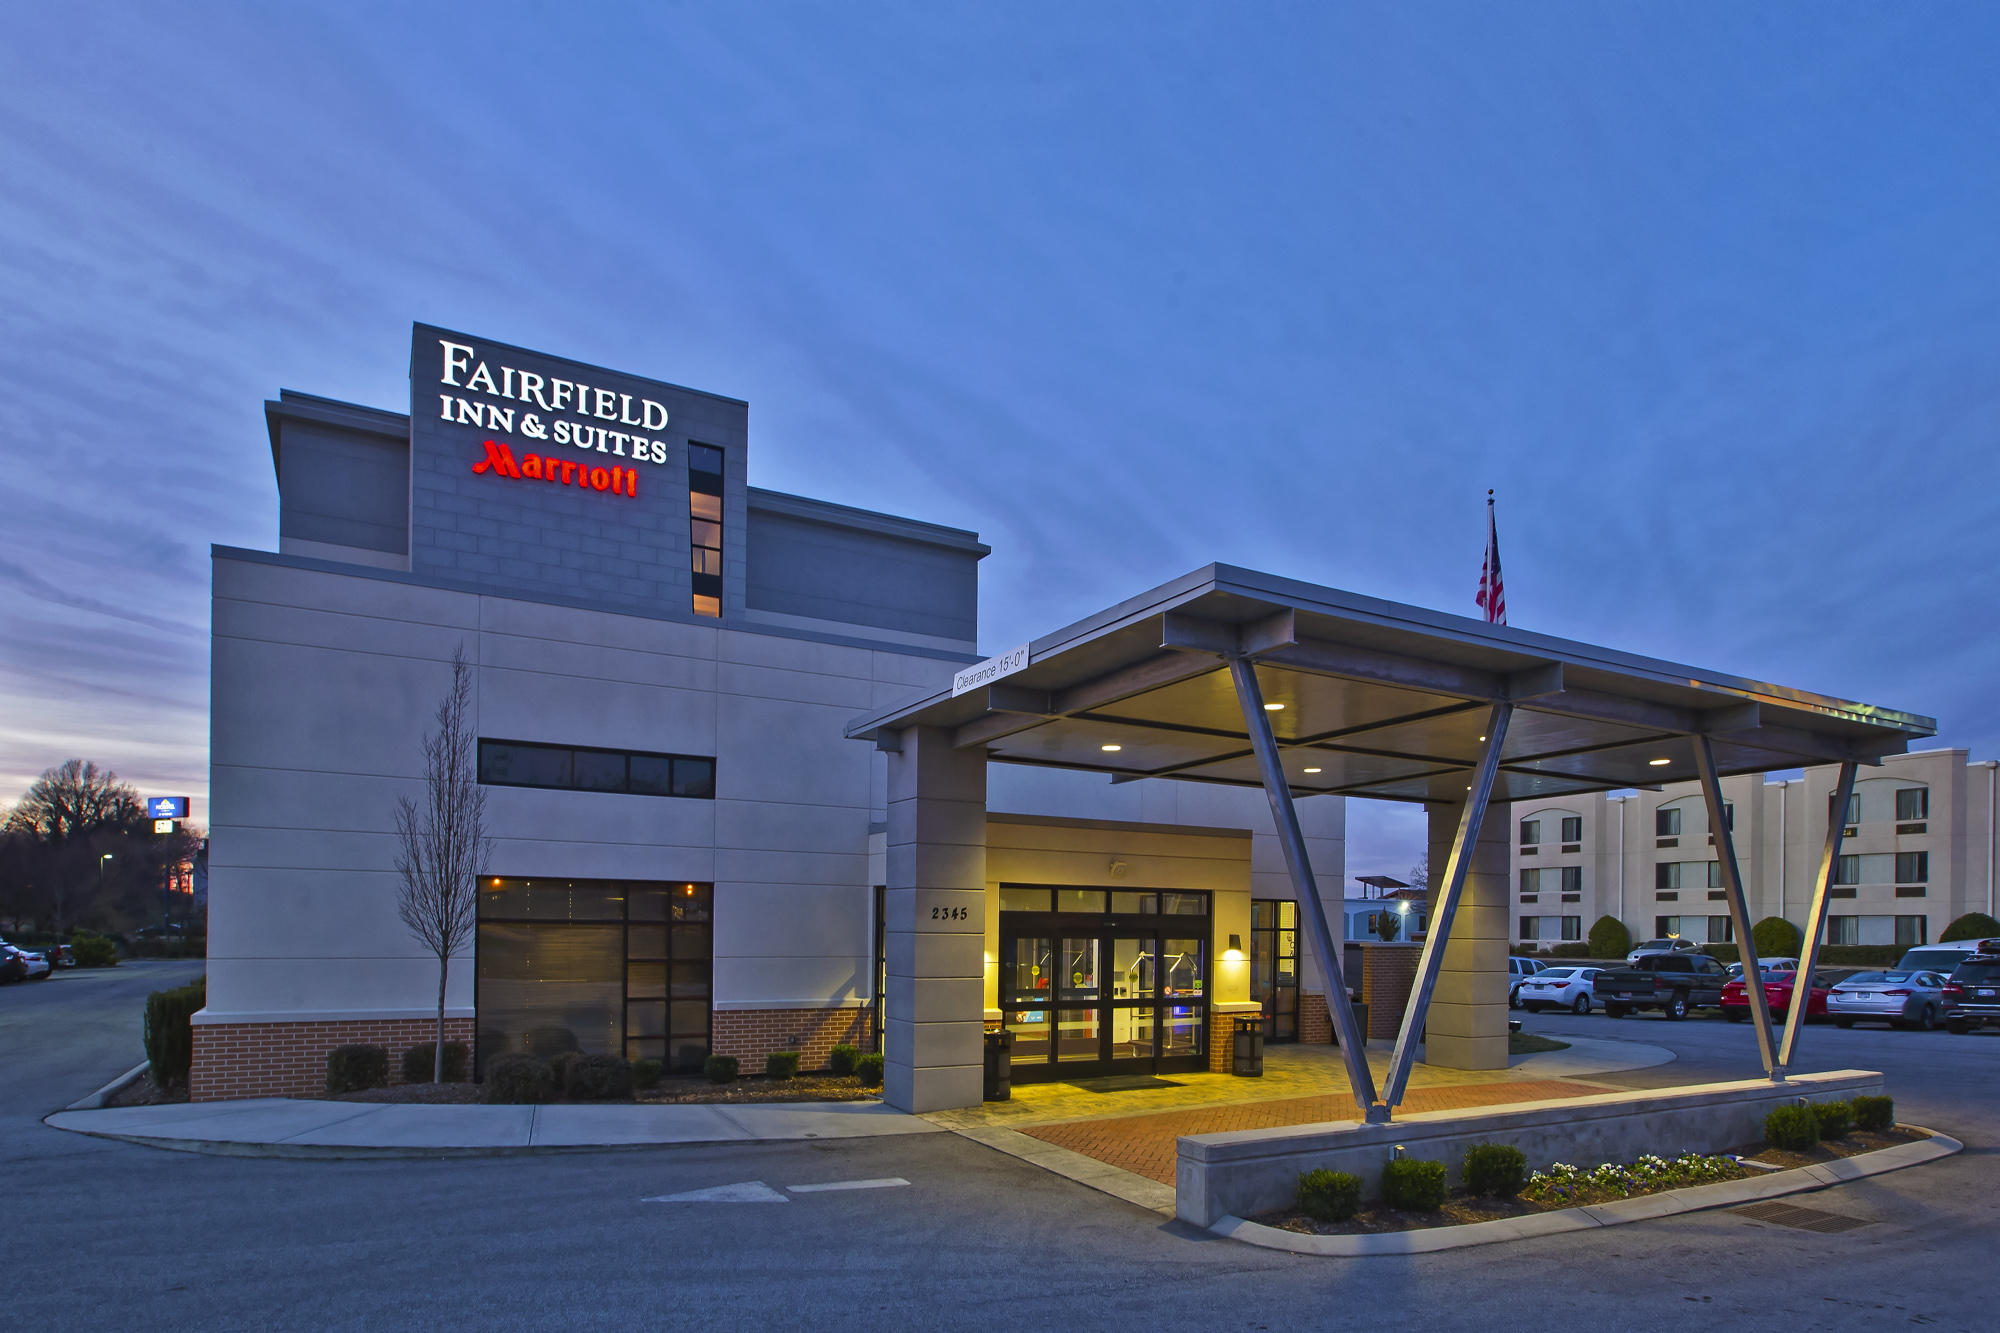 Http Www Marriott Com Hotels Travel Chafi Fairfield Inn And Suites Chattanooga